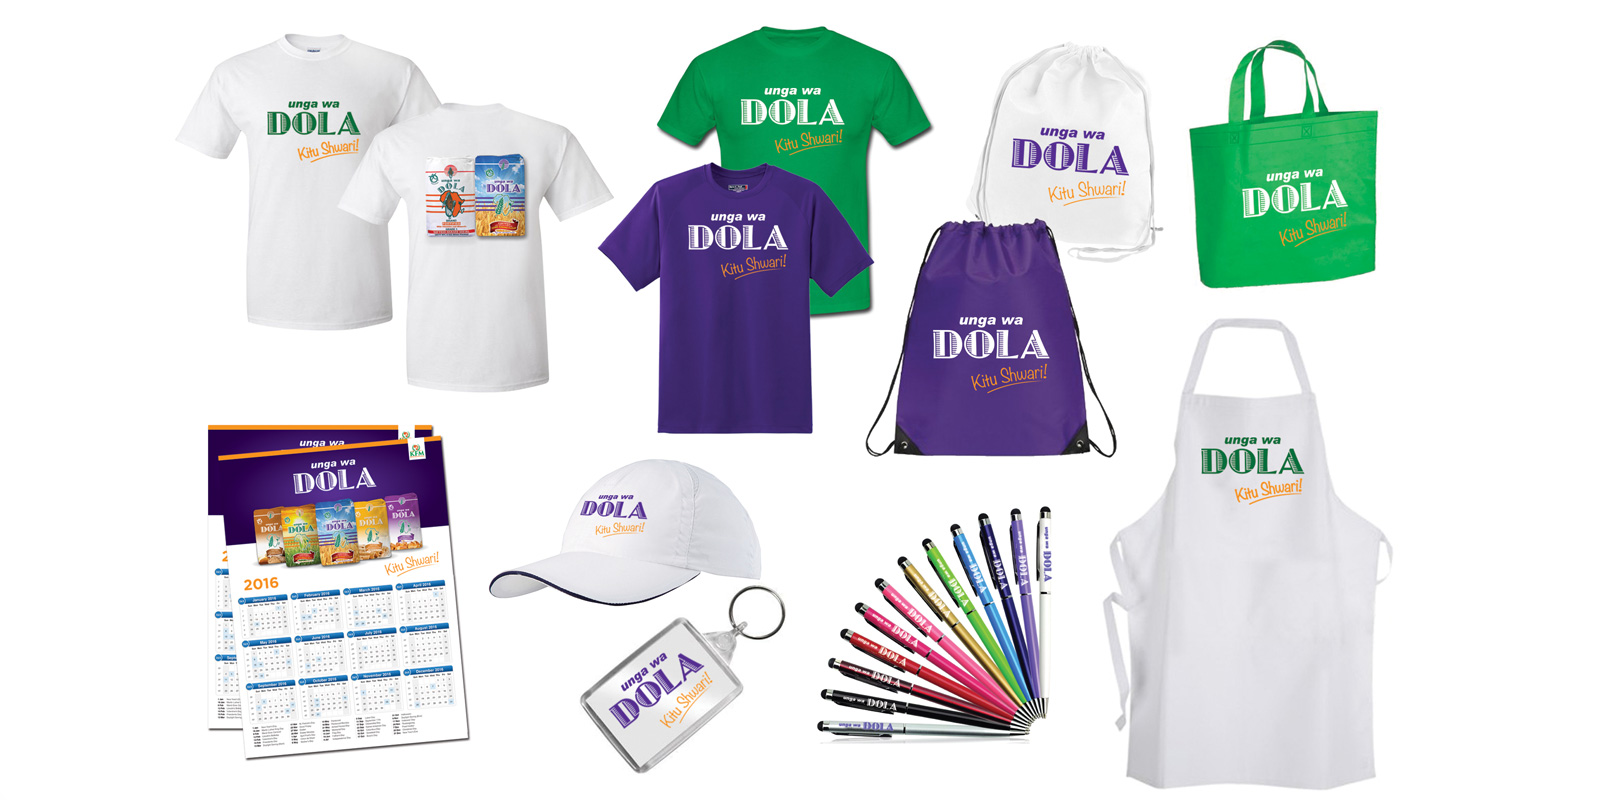 7-unga-wa-dola-promotional-items